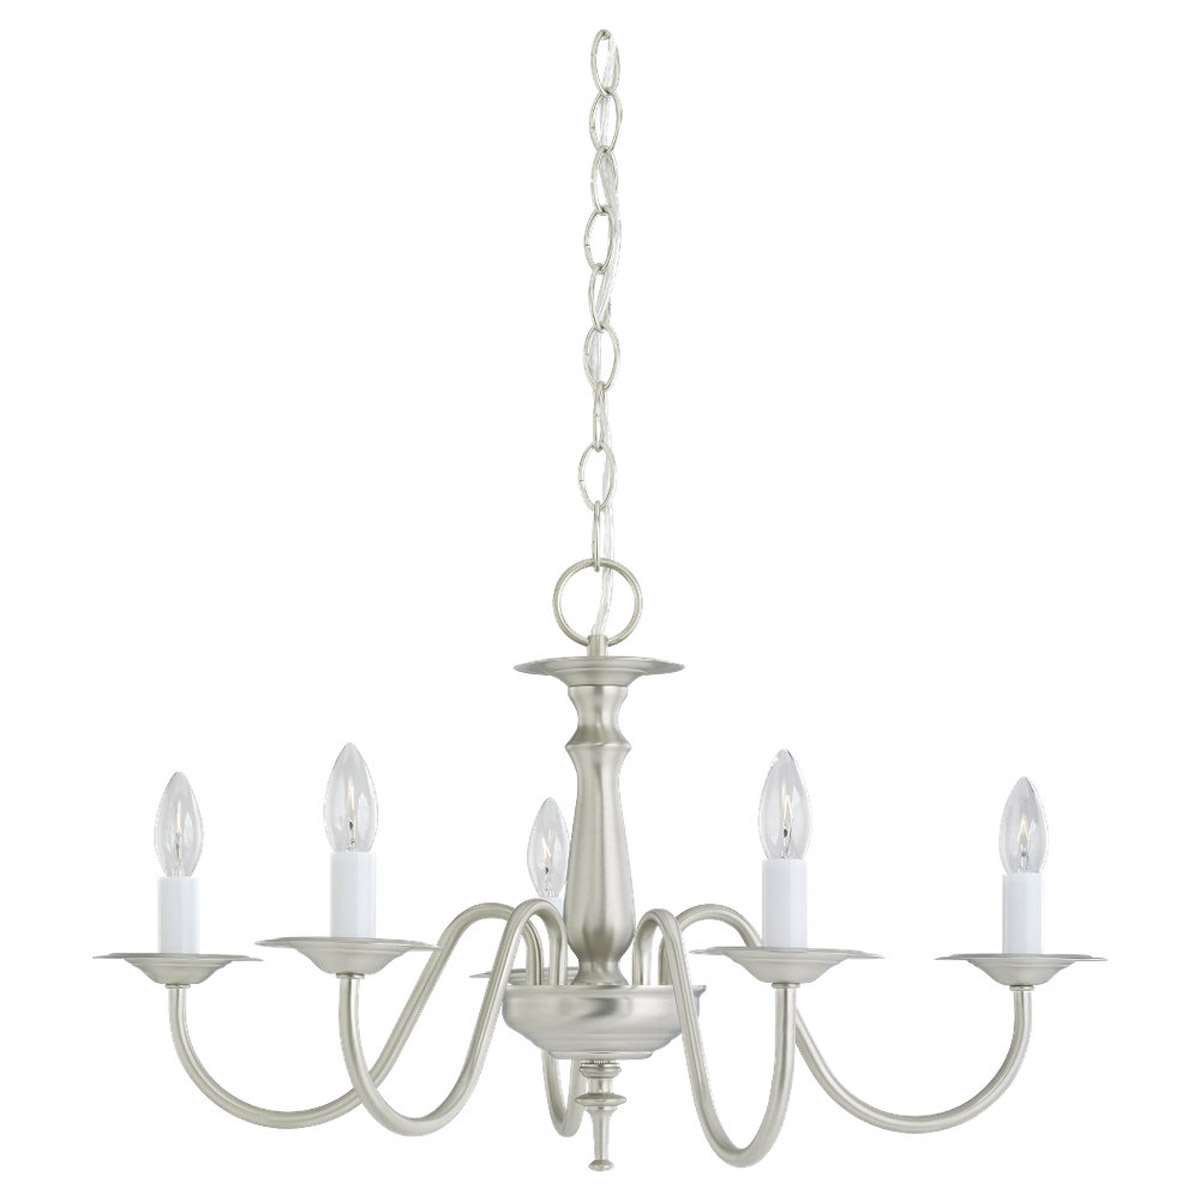 Sea Gull Lighting Traditional 5 Light Chandelier in Brushed Nickel 3121-962 photo